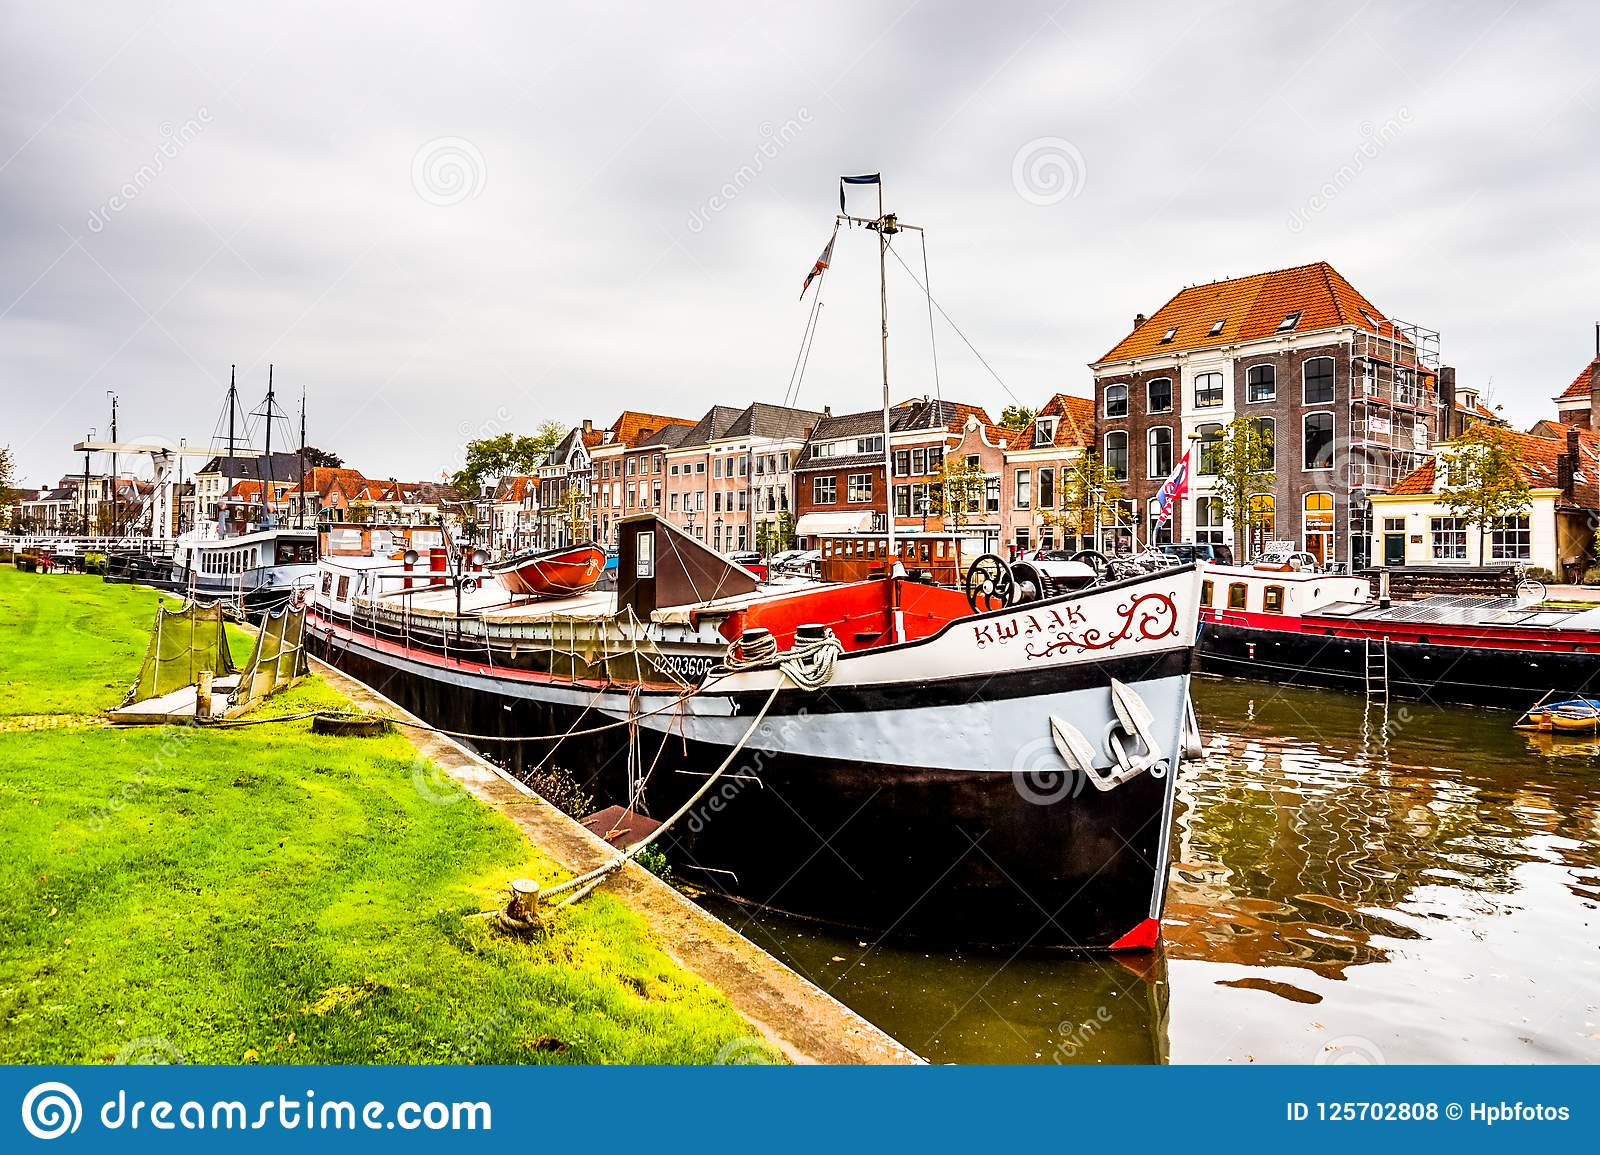 Boats in the Canal that surrounds the city center of Zwolle in Overijssel, the Netherlands